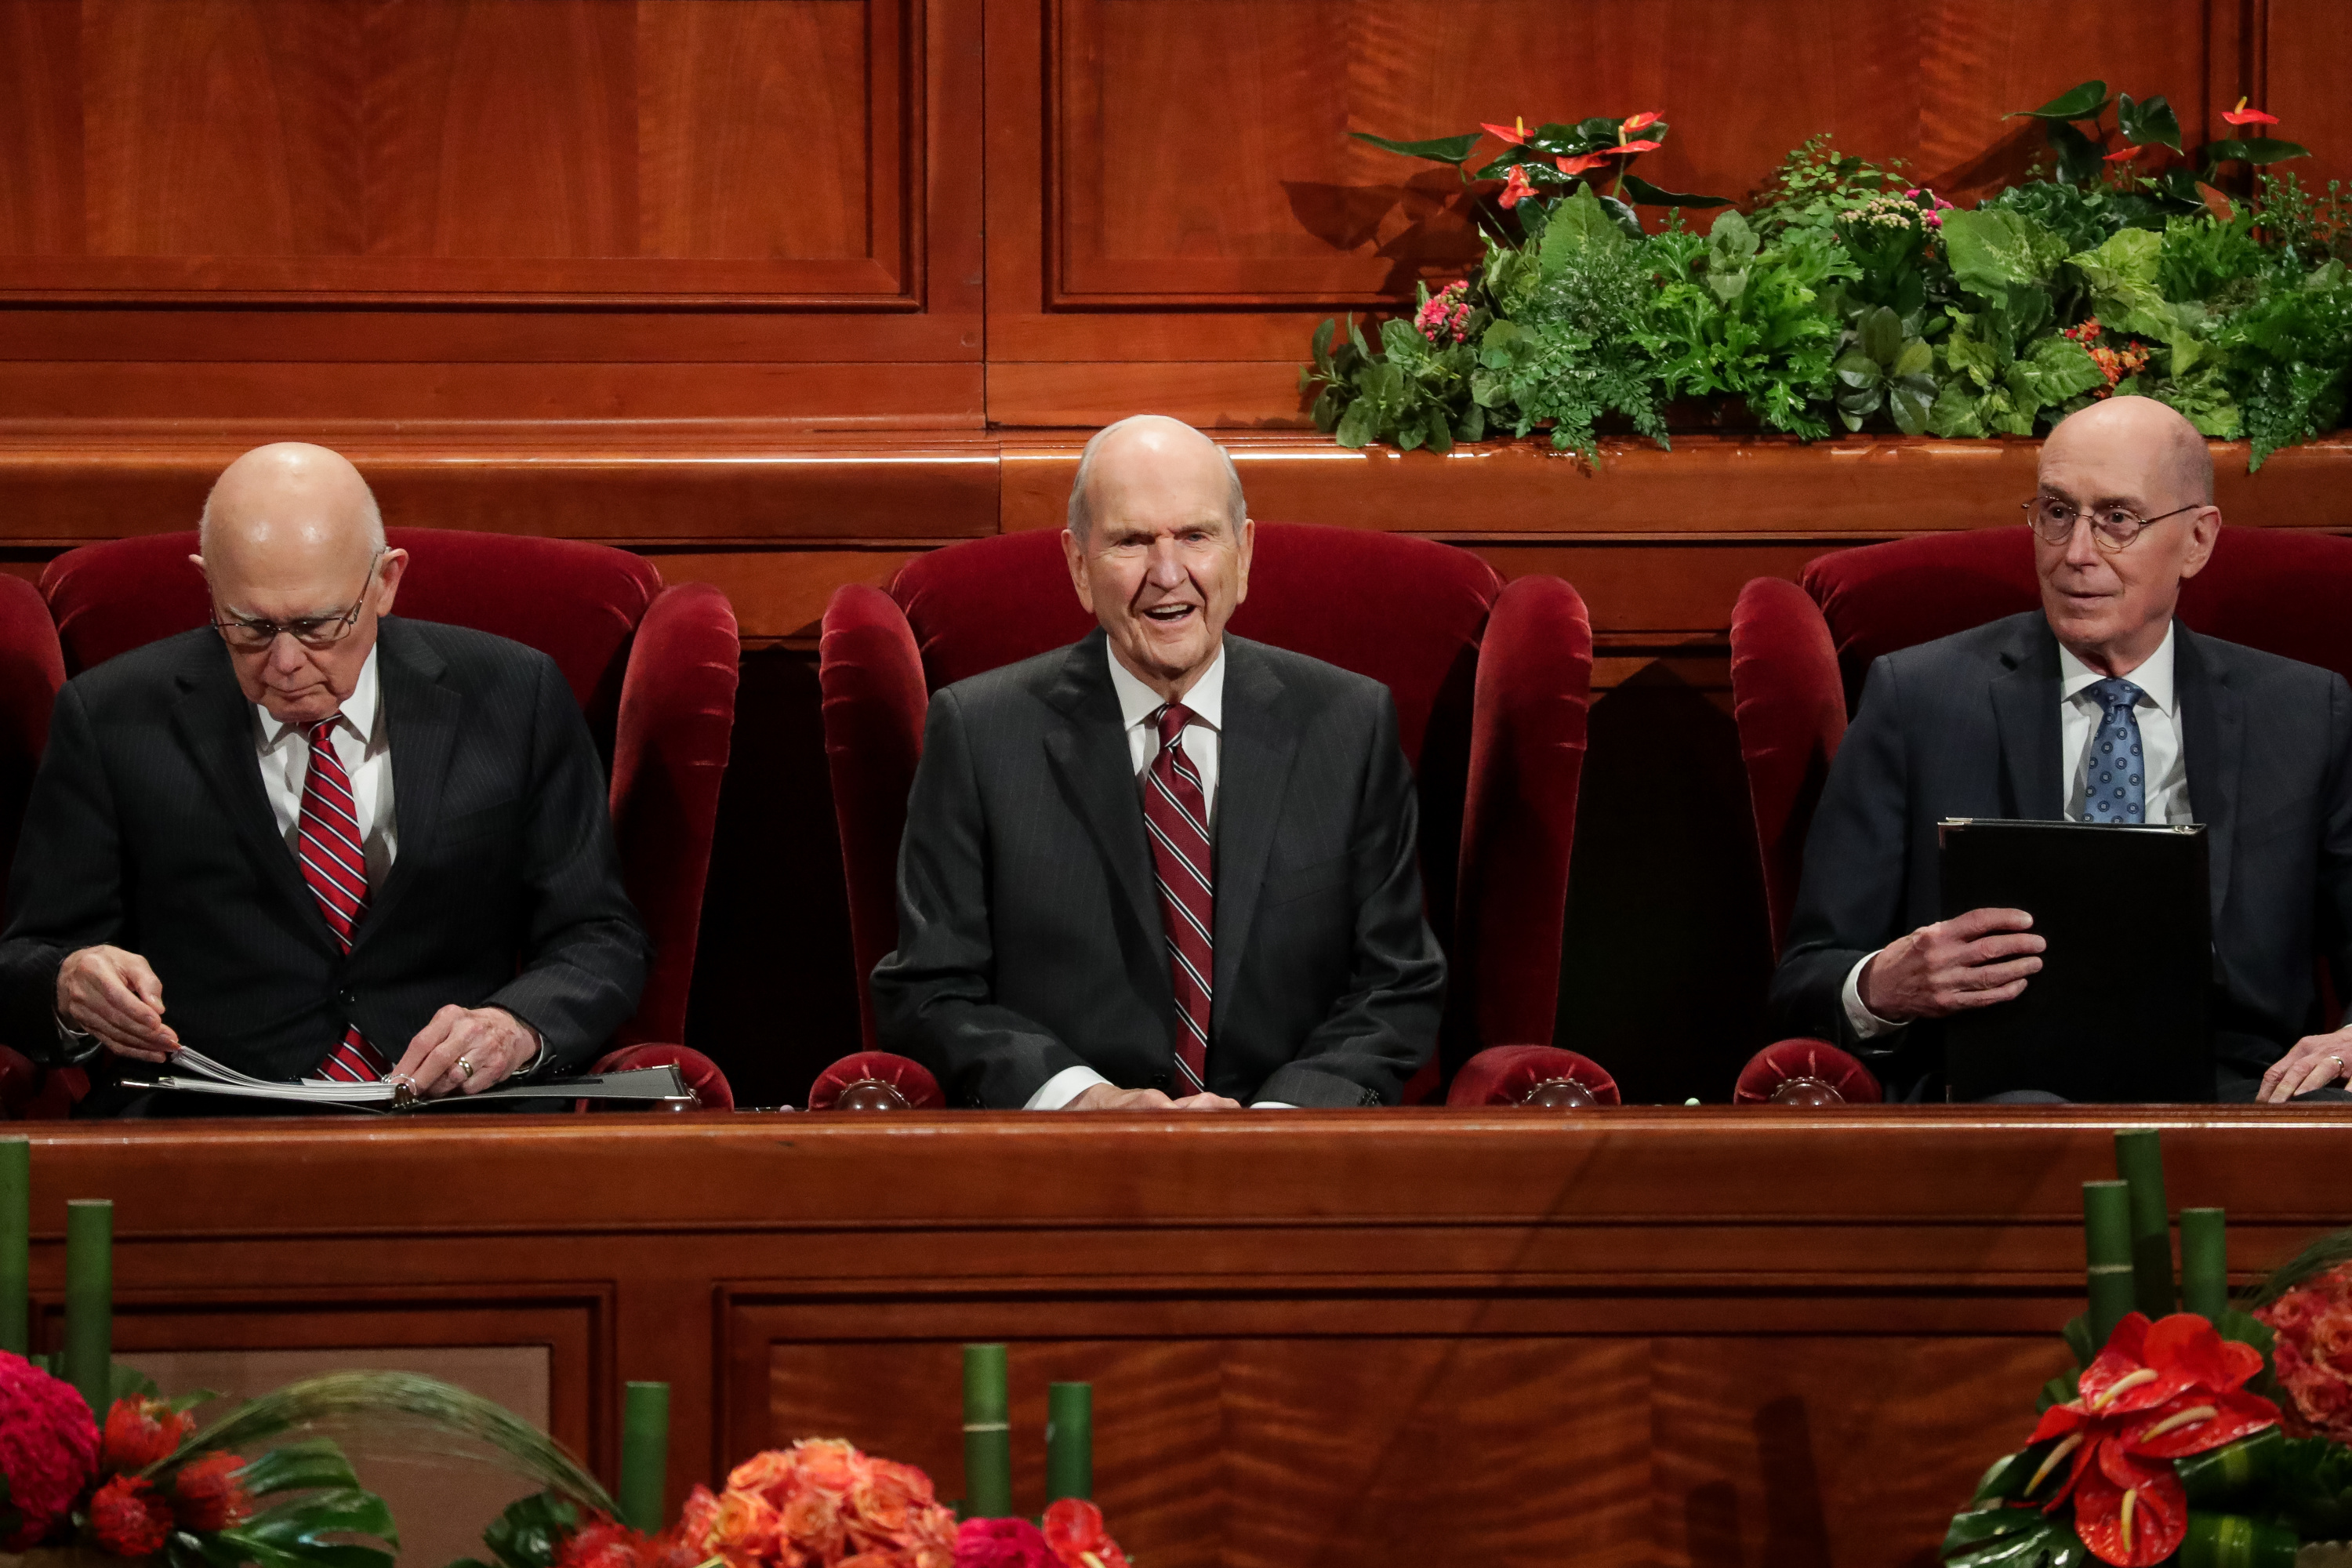 President Russell M. Nelson, center, President Dallin H. Oaks, first counselor in the First Presidency, left, and President Henry B. Eyring, second counselor in the First Presidency, right, take their seats for the Saturday afternoon session of the 188th Semiannual General Conference of The Church of Jesus Christ of Latter-day Saints at the Conference Center in Salt Lake City on Saturday, Oct. 6, 2018.